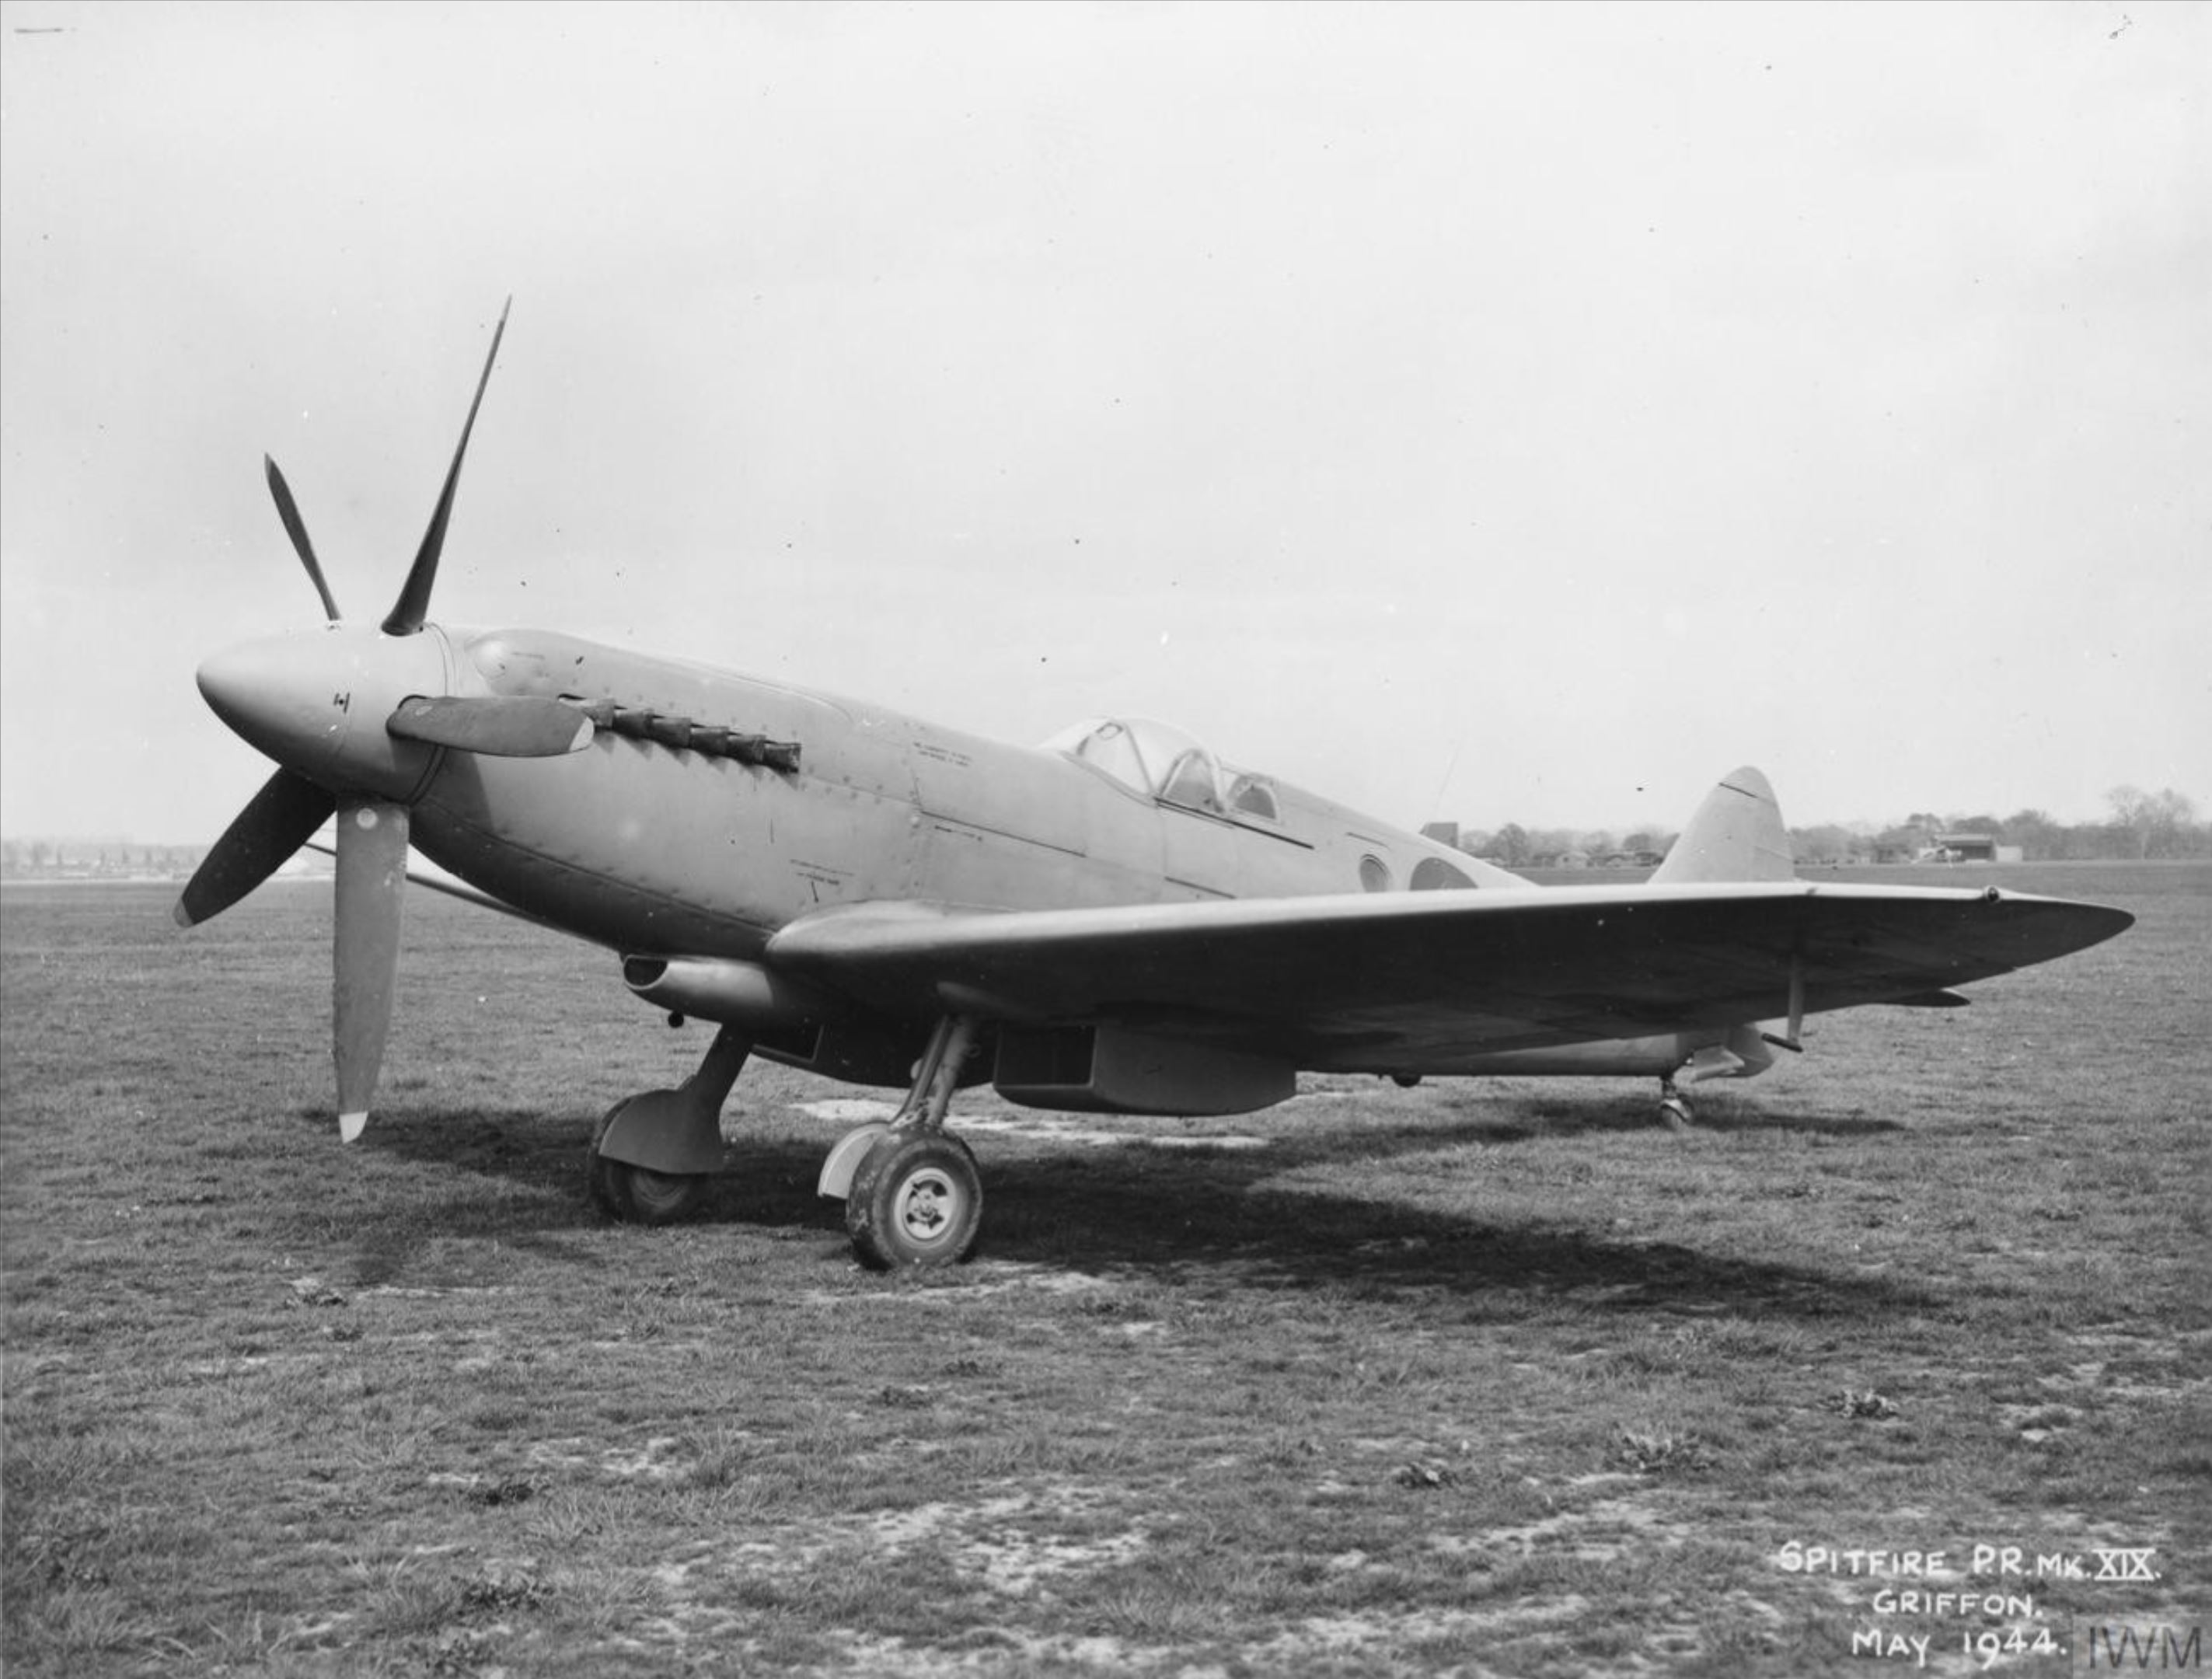 Spitfire PR19 Prototype RM632 factory fresh England May 1944 IWM MH5278